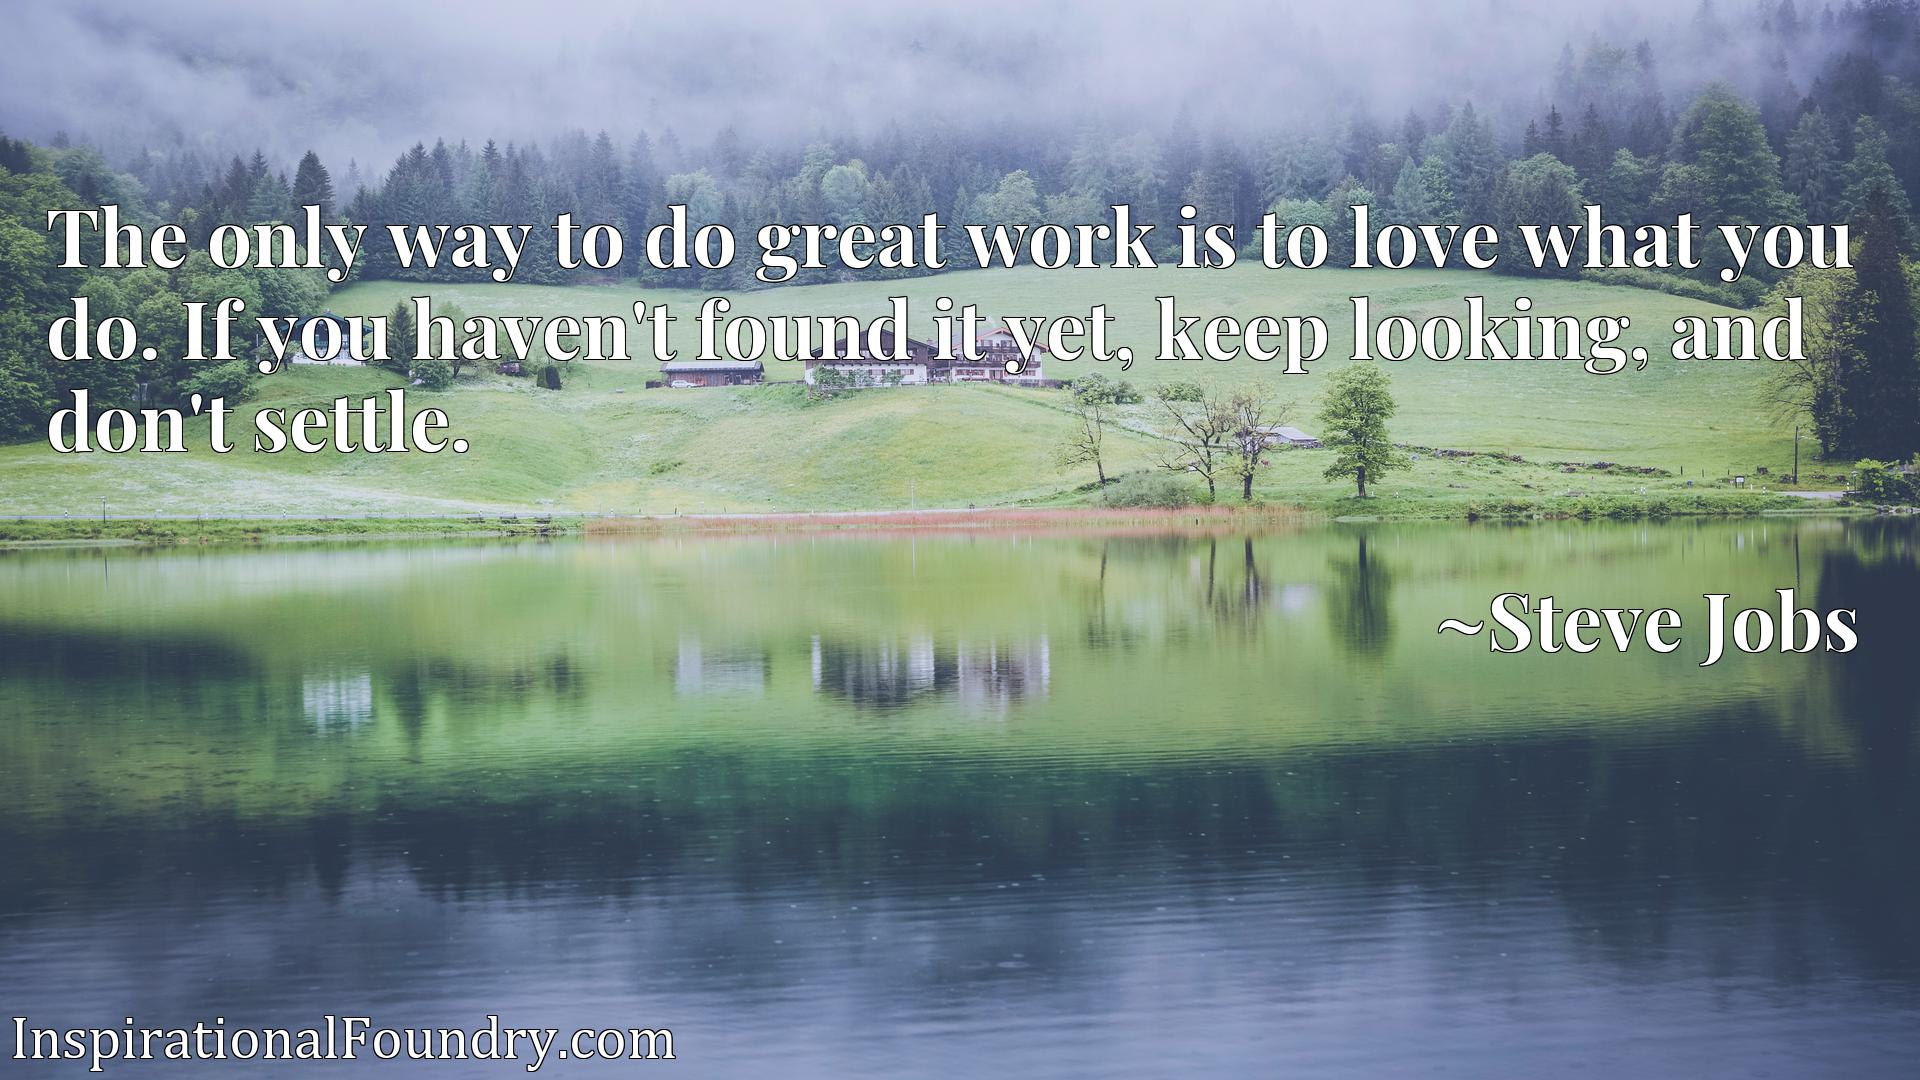 Quote Picture :The only way to do great work is to love what you do. If you haven't found it yet, keep looking, and don't settle.